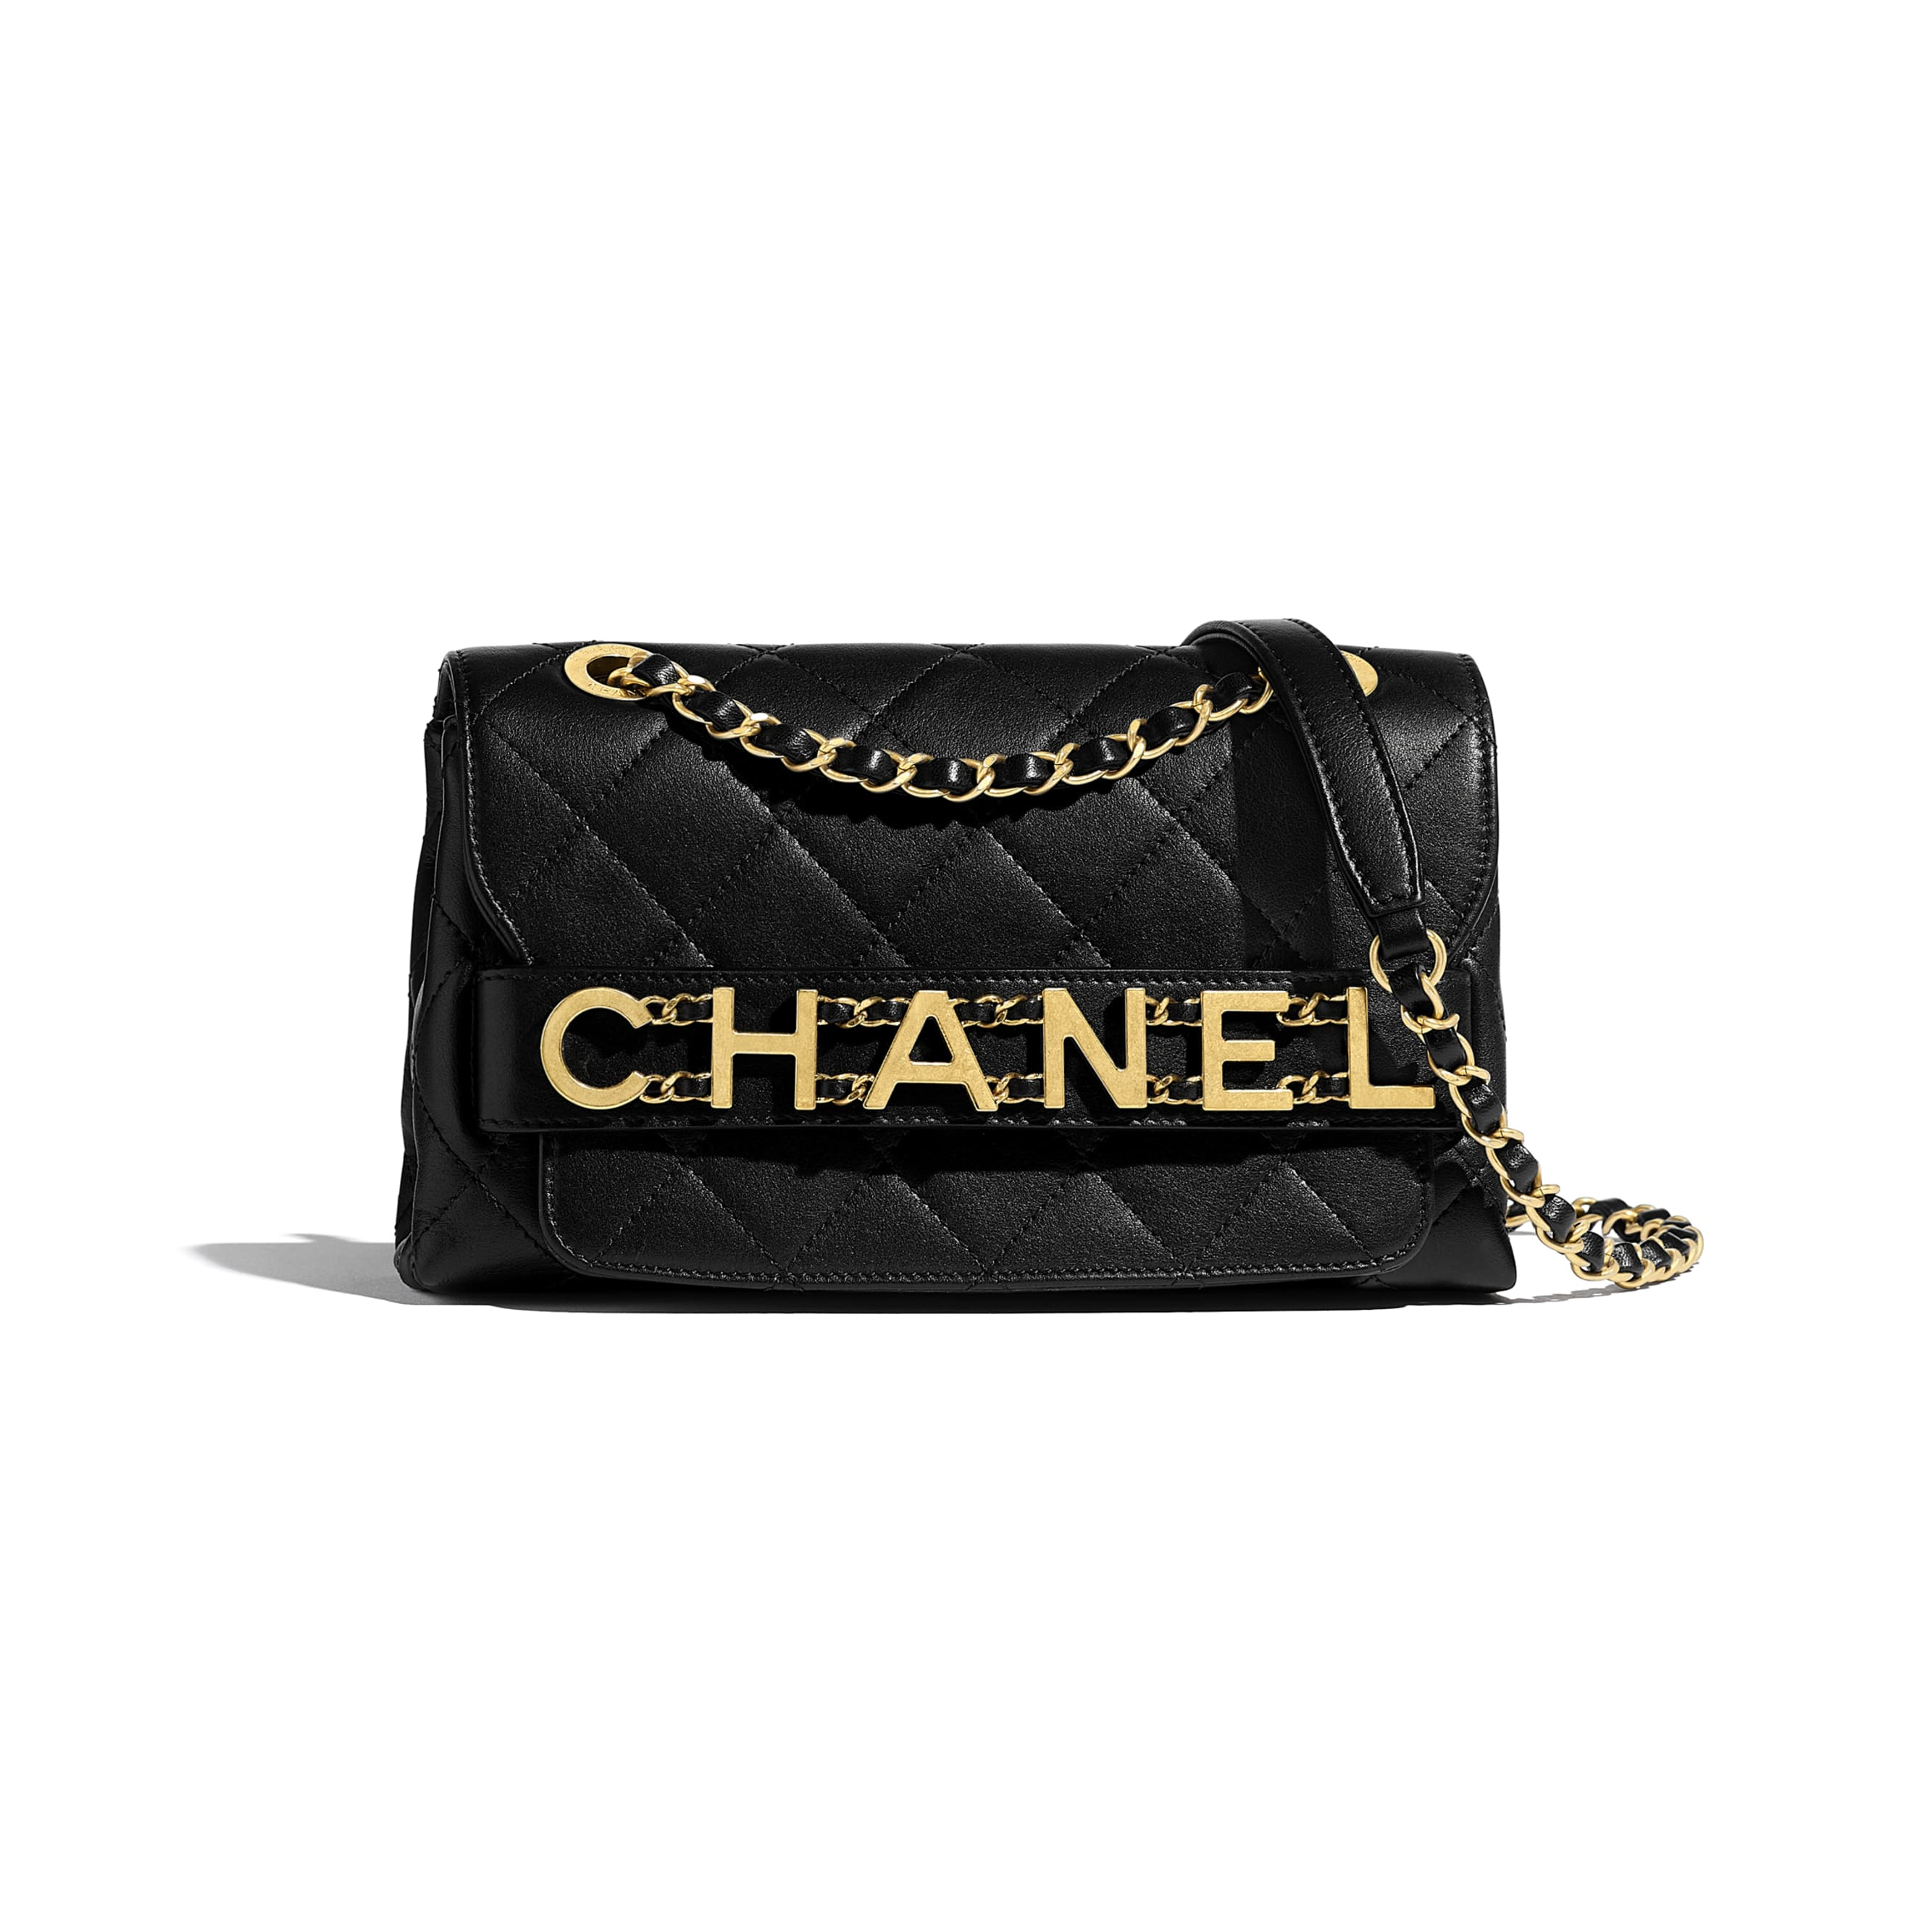 Small Flap Bag - Black - Calfskin & Gold-Tone Metal - Default view - see standard sized version